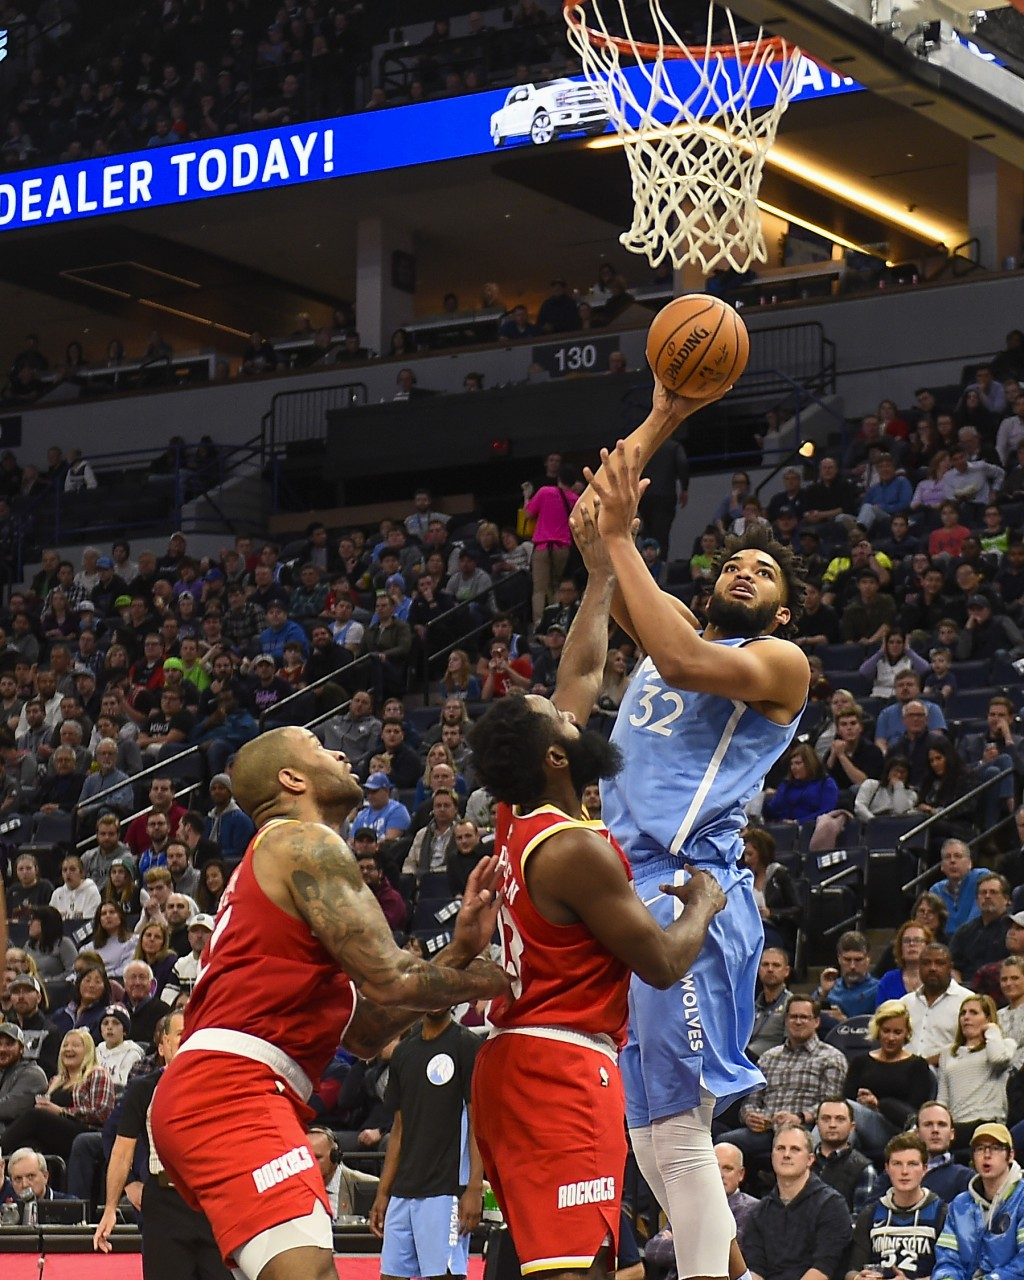 Minnesota Timberwolves center Karl-Anthony Towns (32) goes up to shoot as Houston Rockets guard James Harden, center, and forward P.J. Tucker look on ...